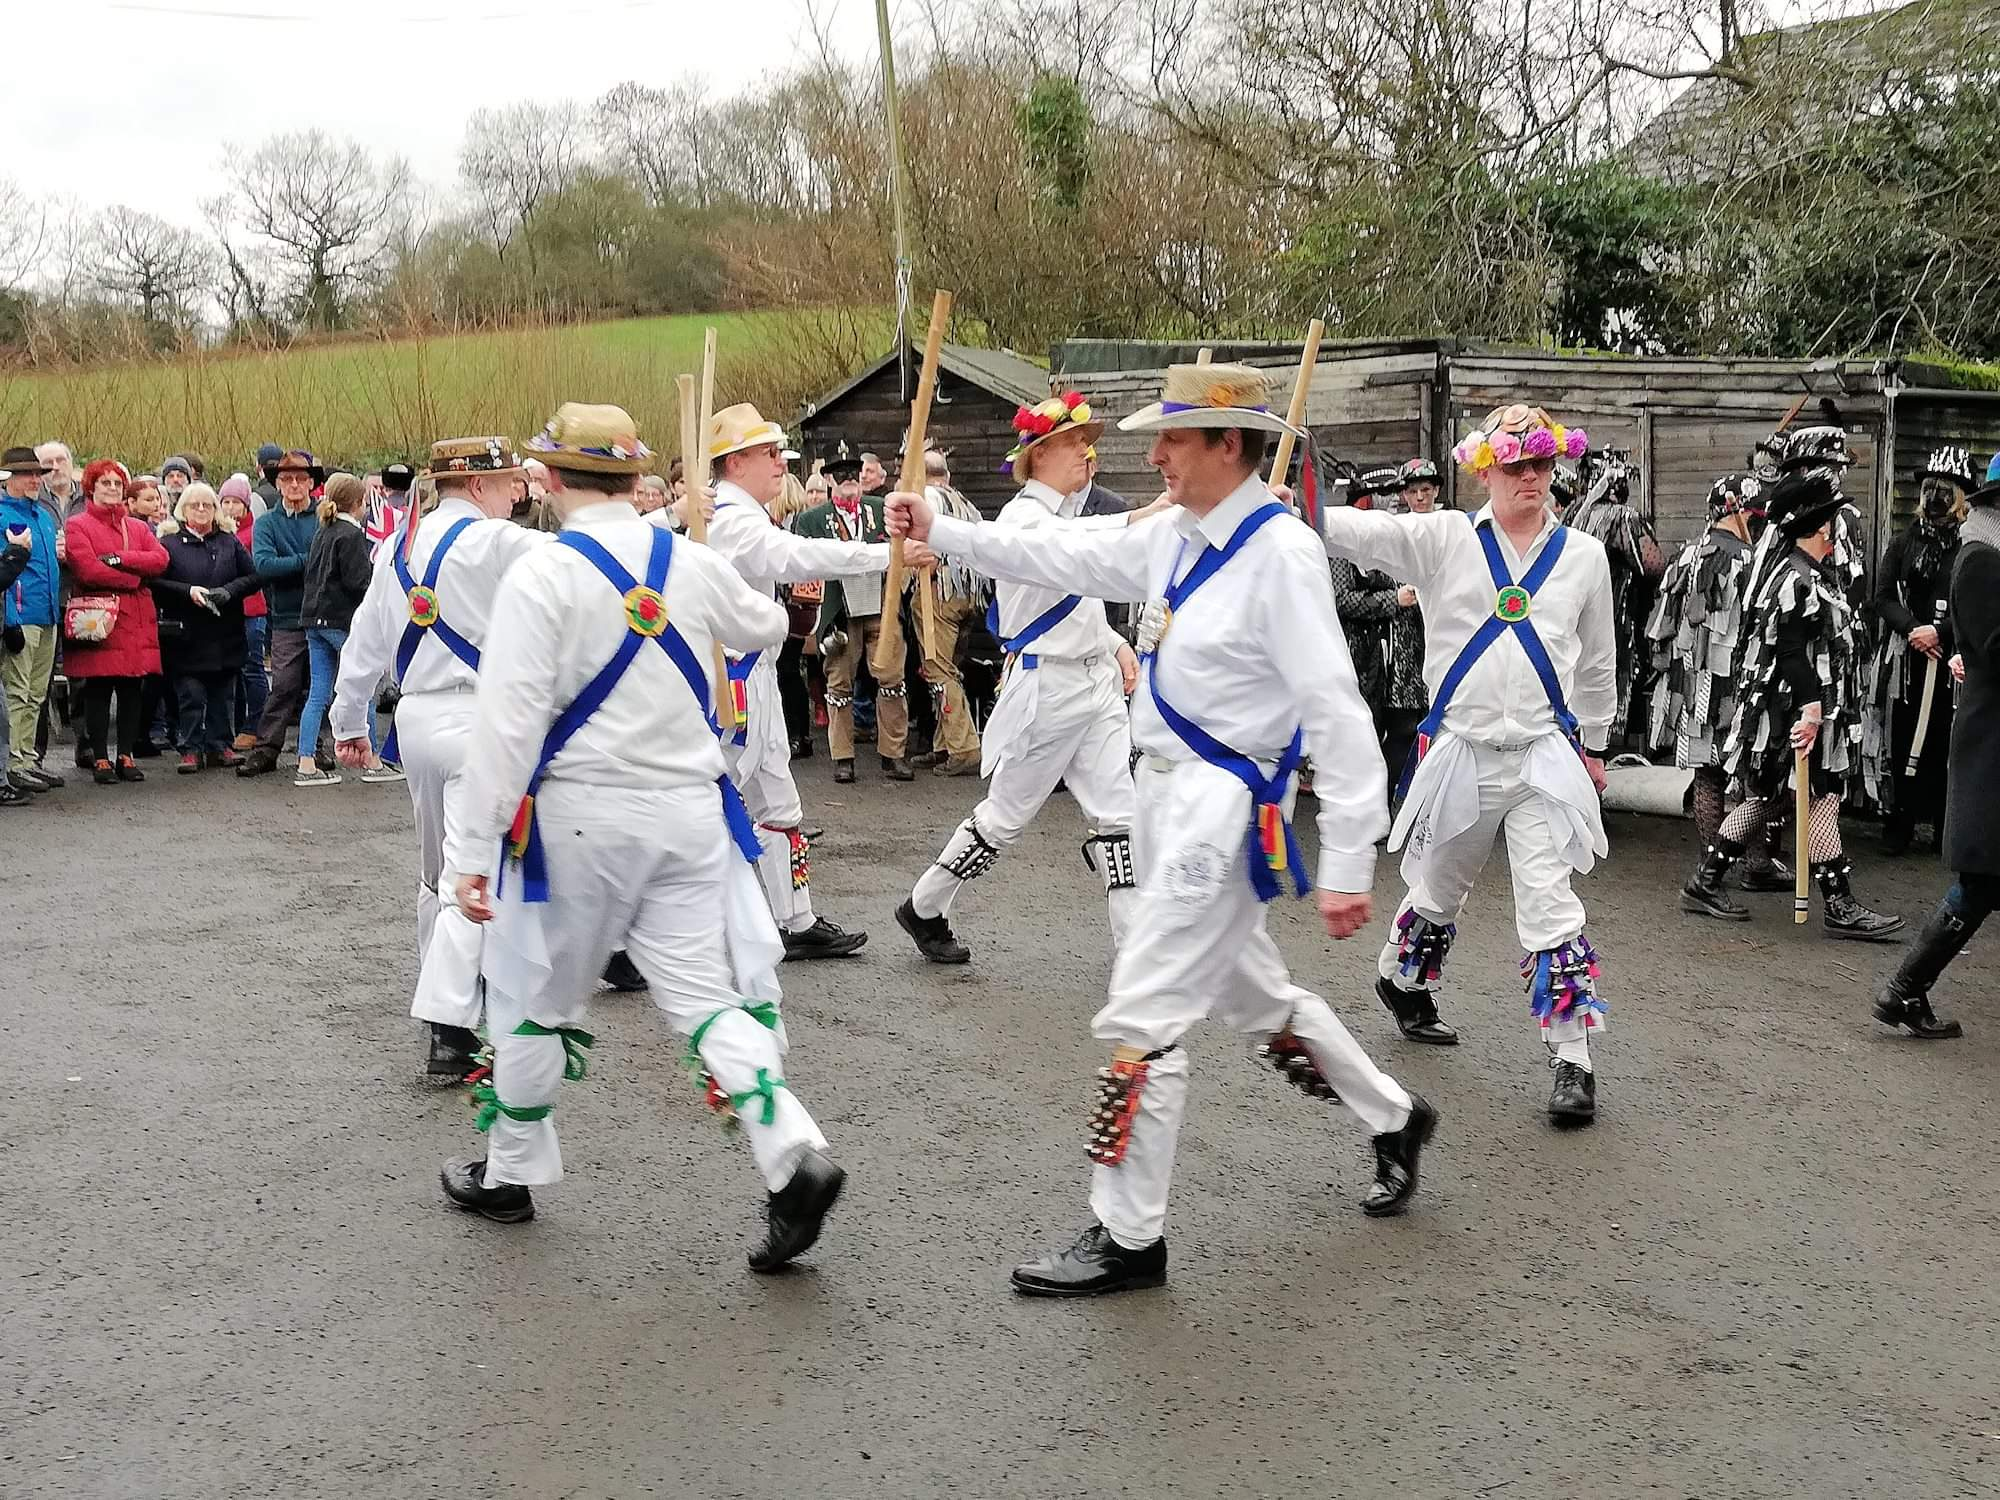 Dancing out with Alvechurch Morris Men on 1st January 2019 - (Photograph courtesy of Dave Fisher)